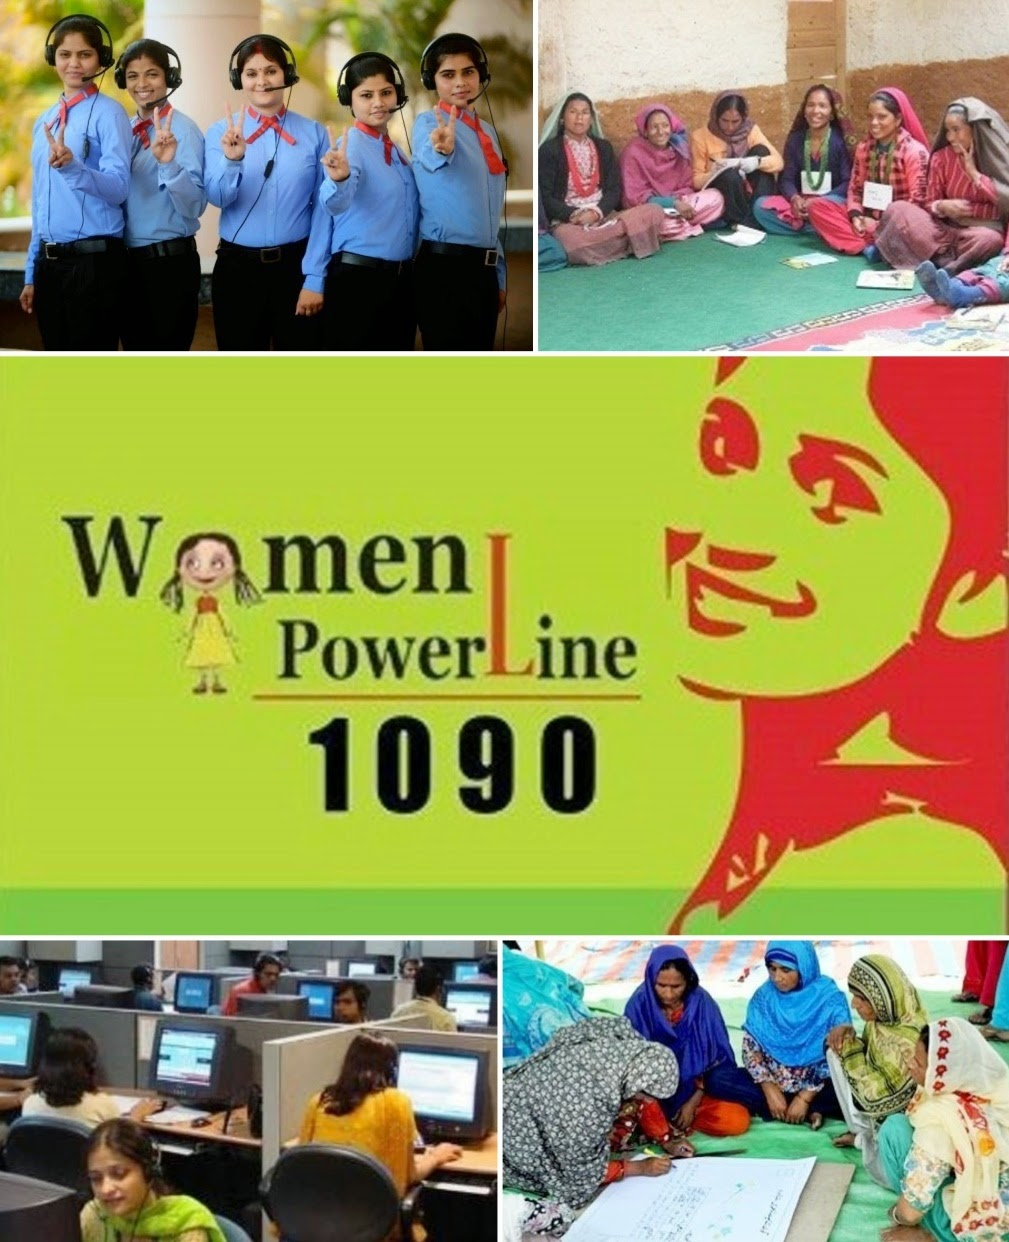 Women Power Line, Empower Women